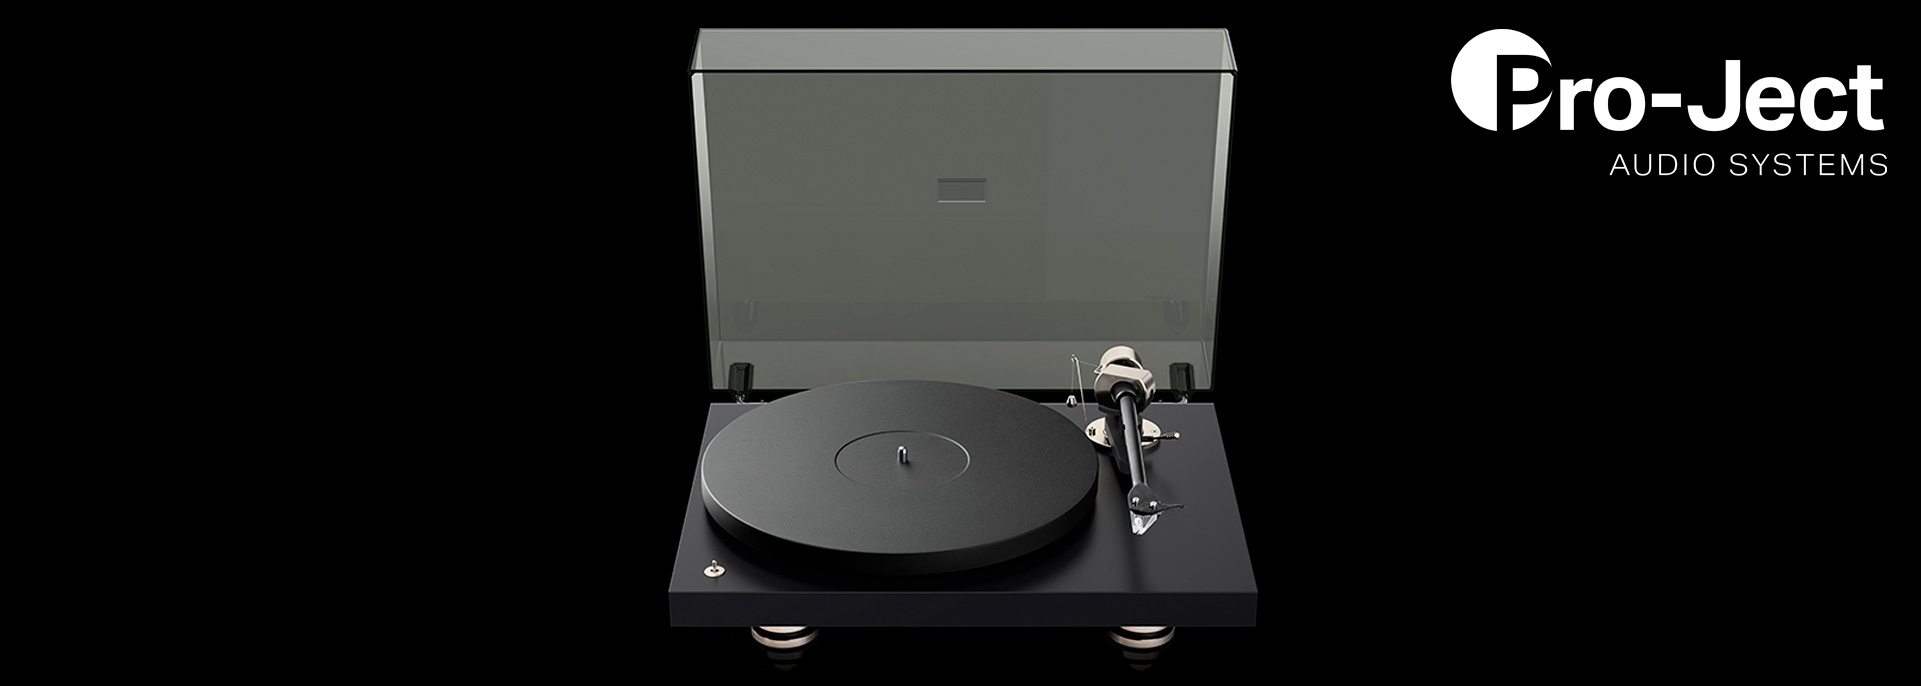 Pro-Ject Audio Business